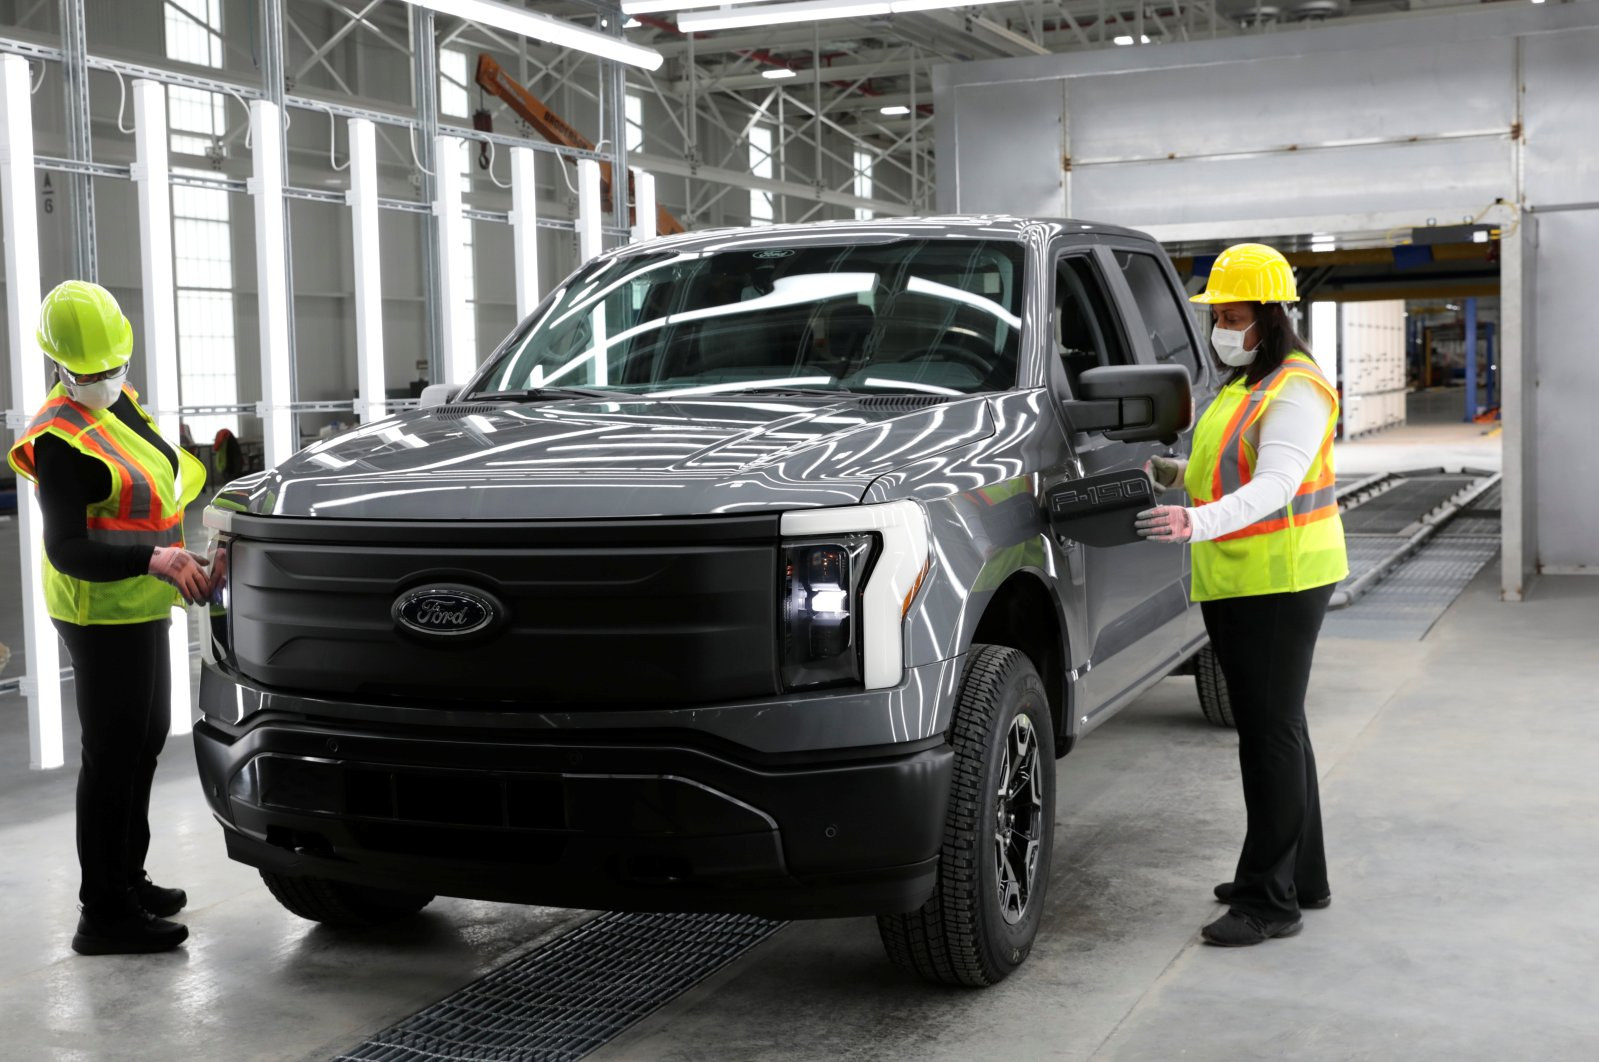 A Ford Motors pre-production all-electric F-150 Lightning truck prototype is seen at the Rouge Electric Vehicle Center in the Rouge Complex in Dearborn, Michigan, U.S., Sept. 16, 2021. (Reuters Photo)